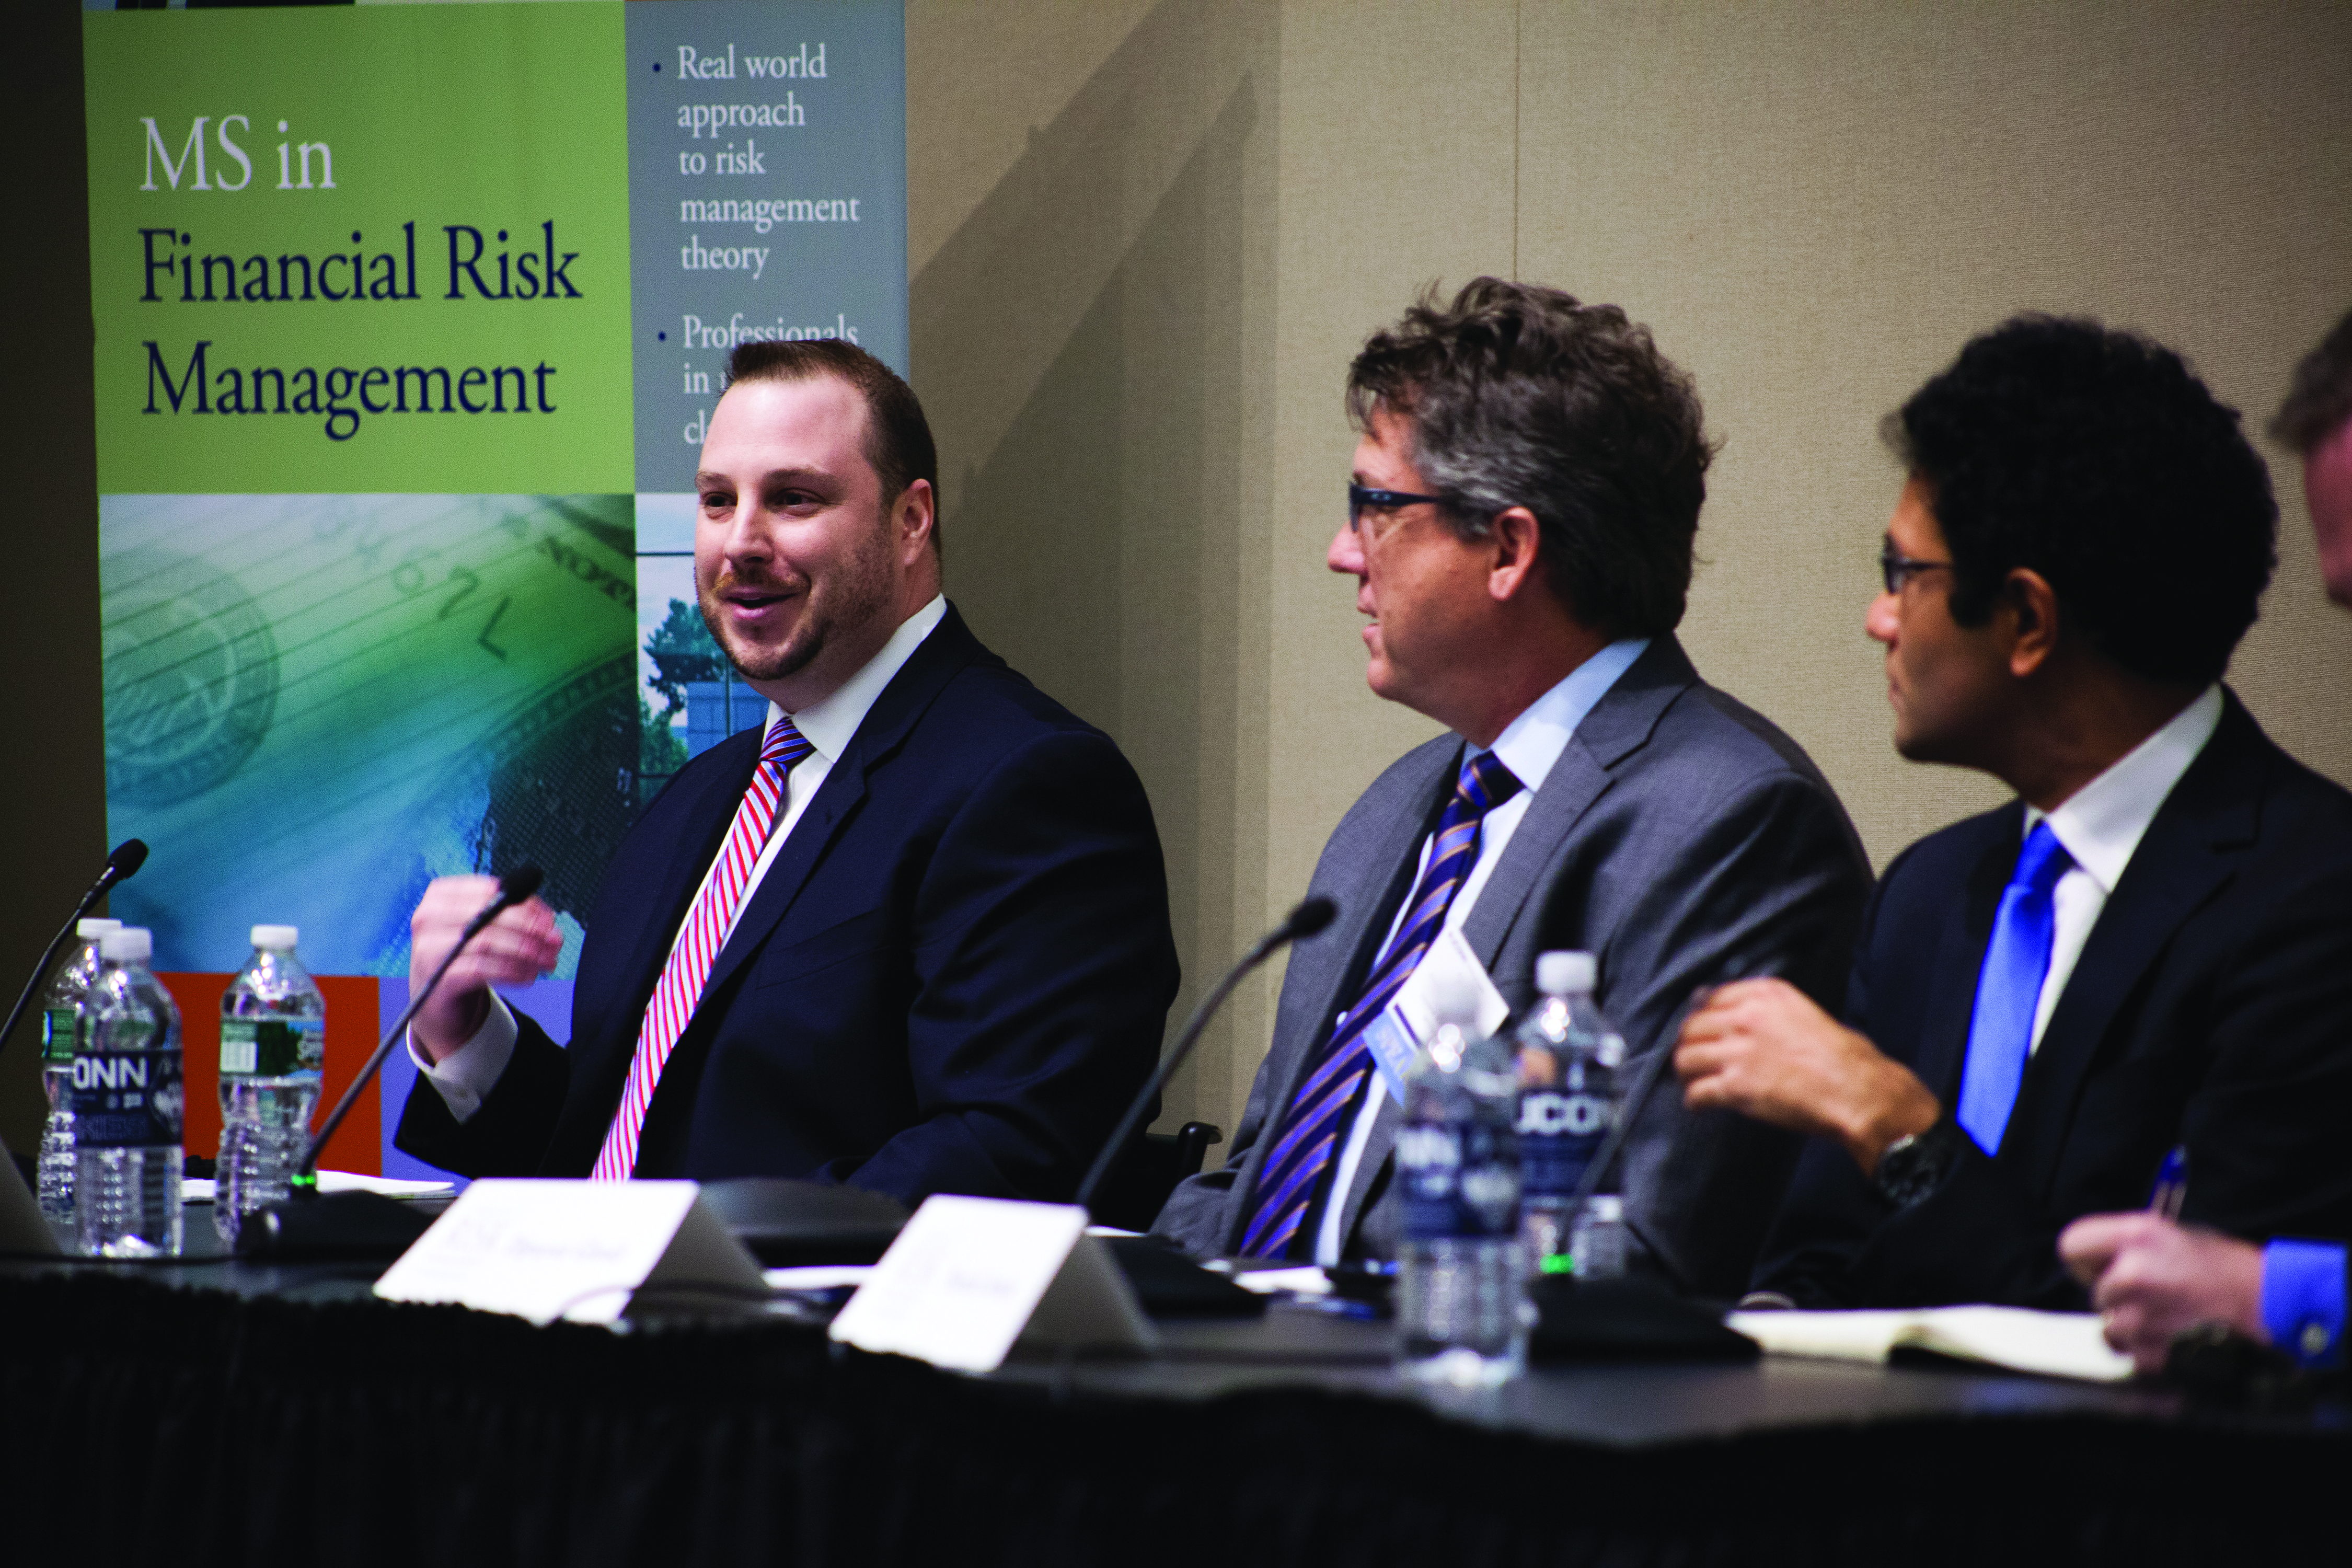 SVP Chief Risk and Chief Credit Officer John Bonora of First County Bank speaks on a panel at the 2015 Connecticut Risk Management Conference, which brings together industry professionals and faculty experts to discuss various aspects of risk.